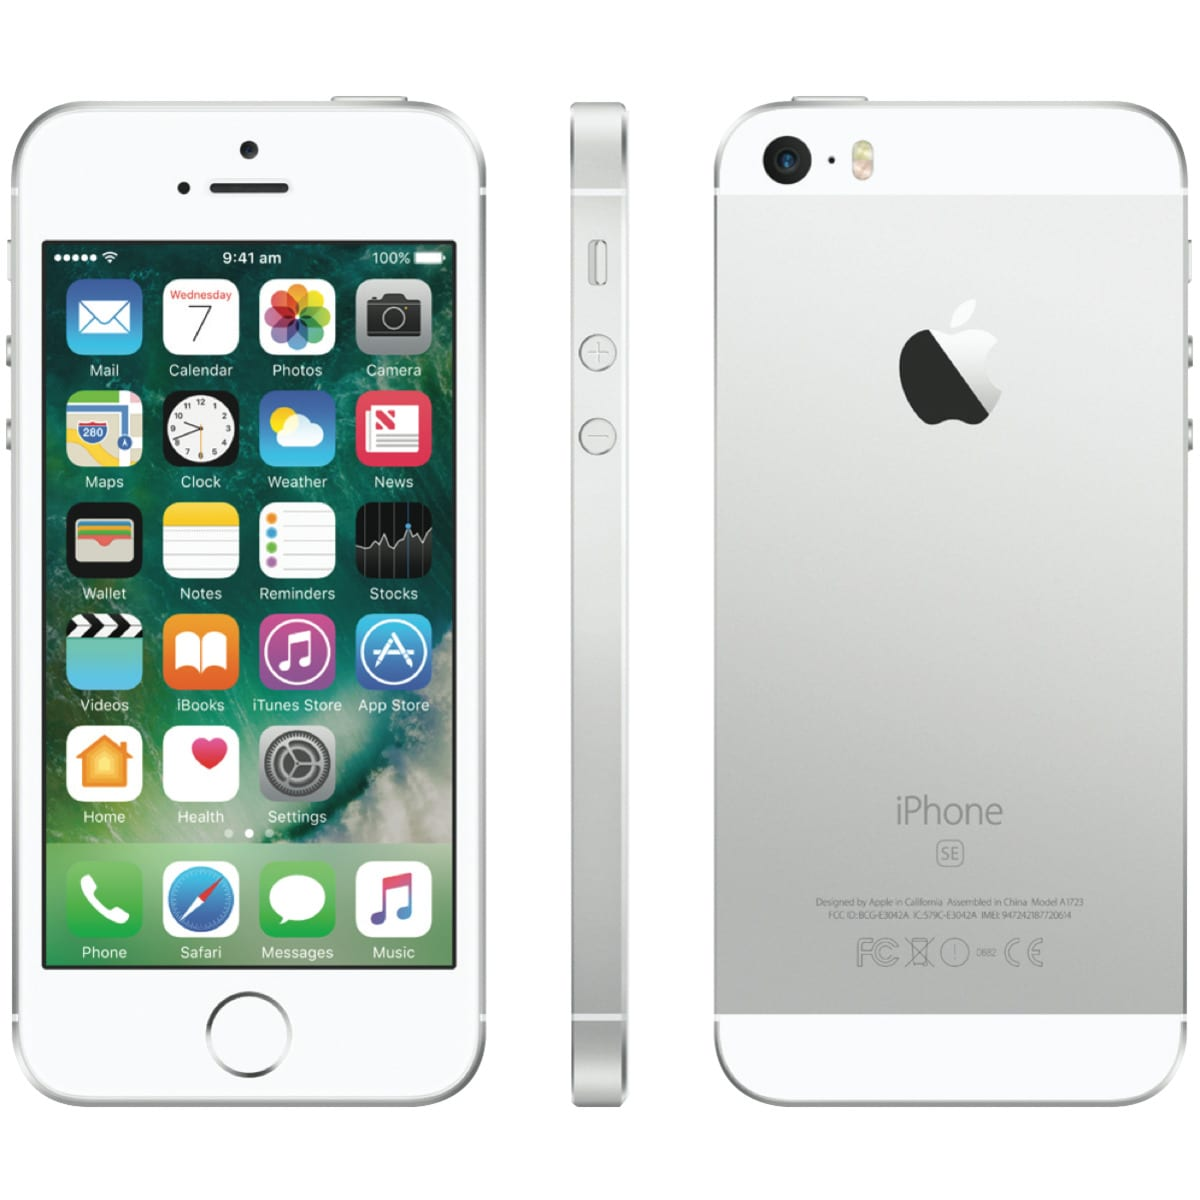 Apple iPhone Repairs Prices | iRepair Glasgow | iRepair ...